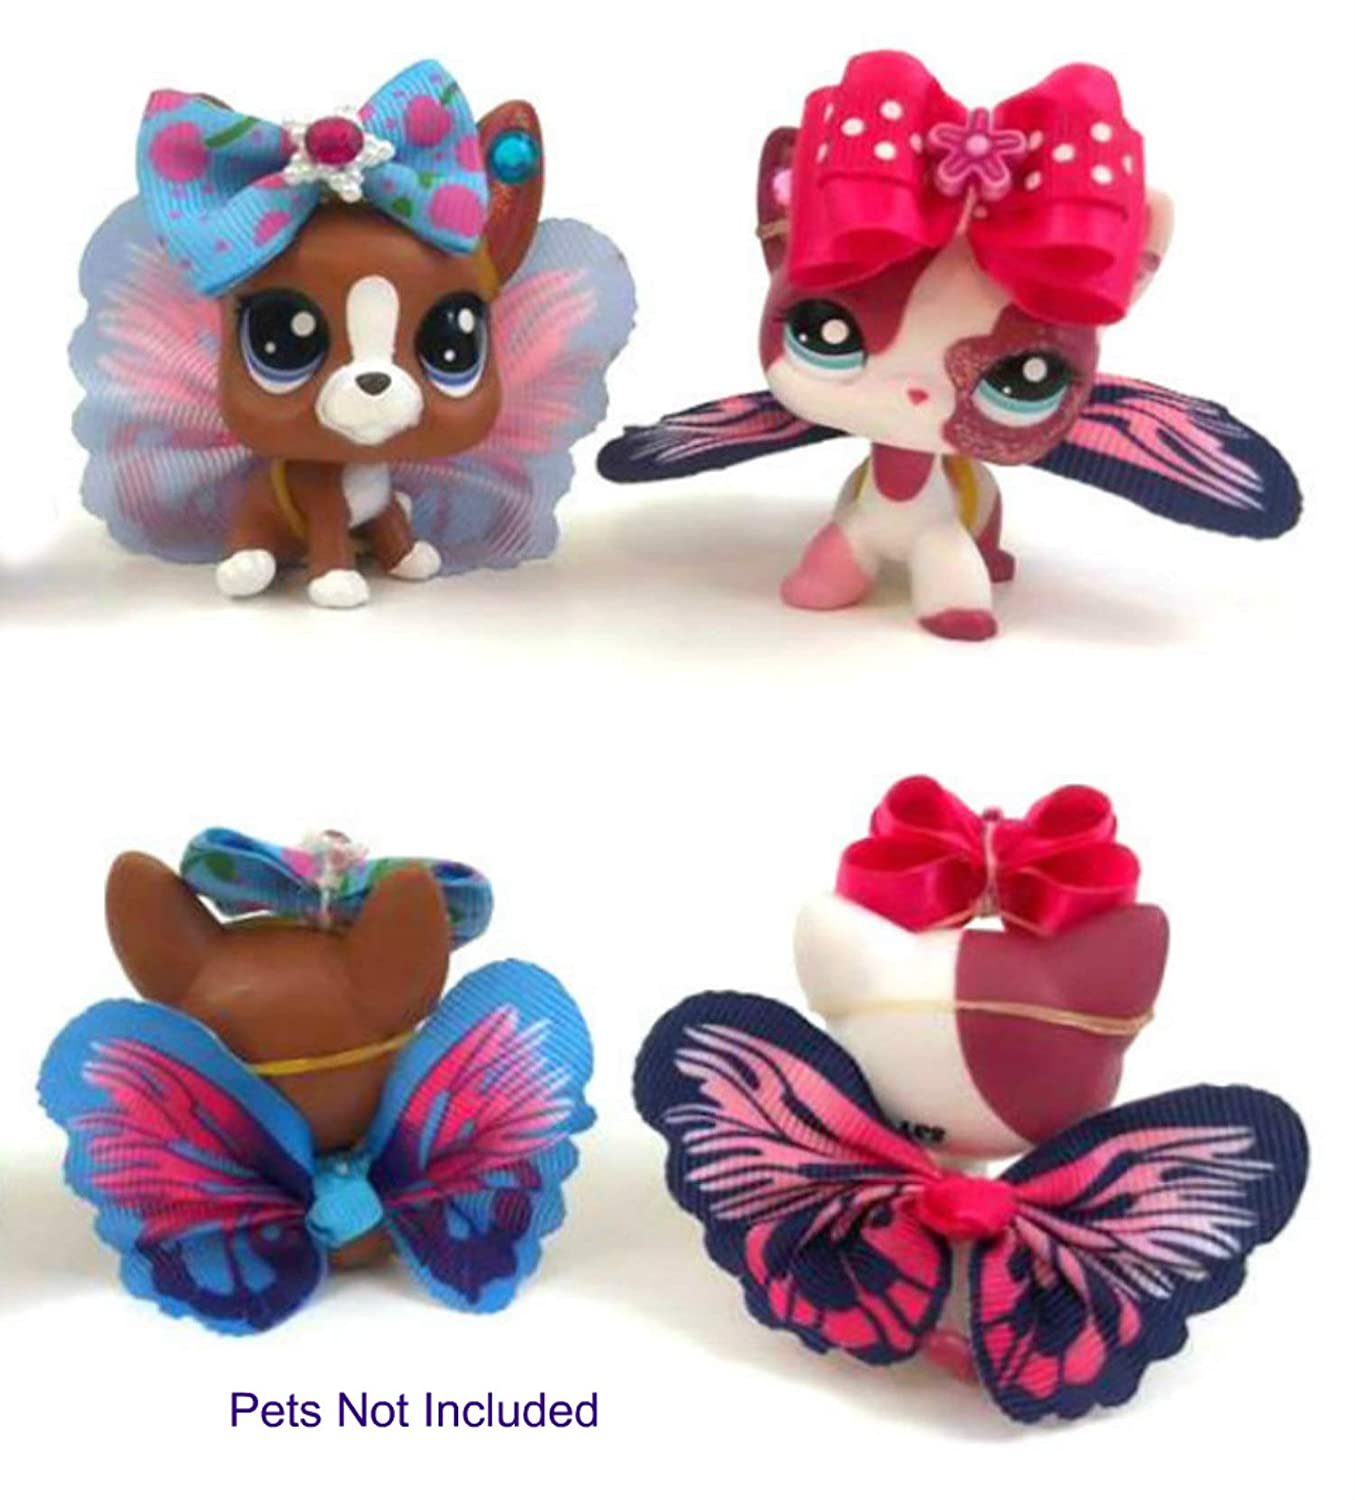 Littlest Pet Shop Accessories LPS 6 Piece Lot 2 Wings, 2 Bows, 2 Sets Of Earrings